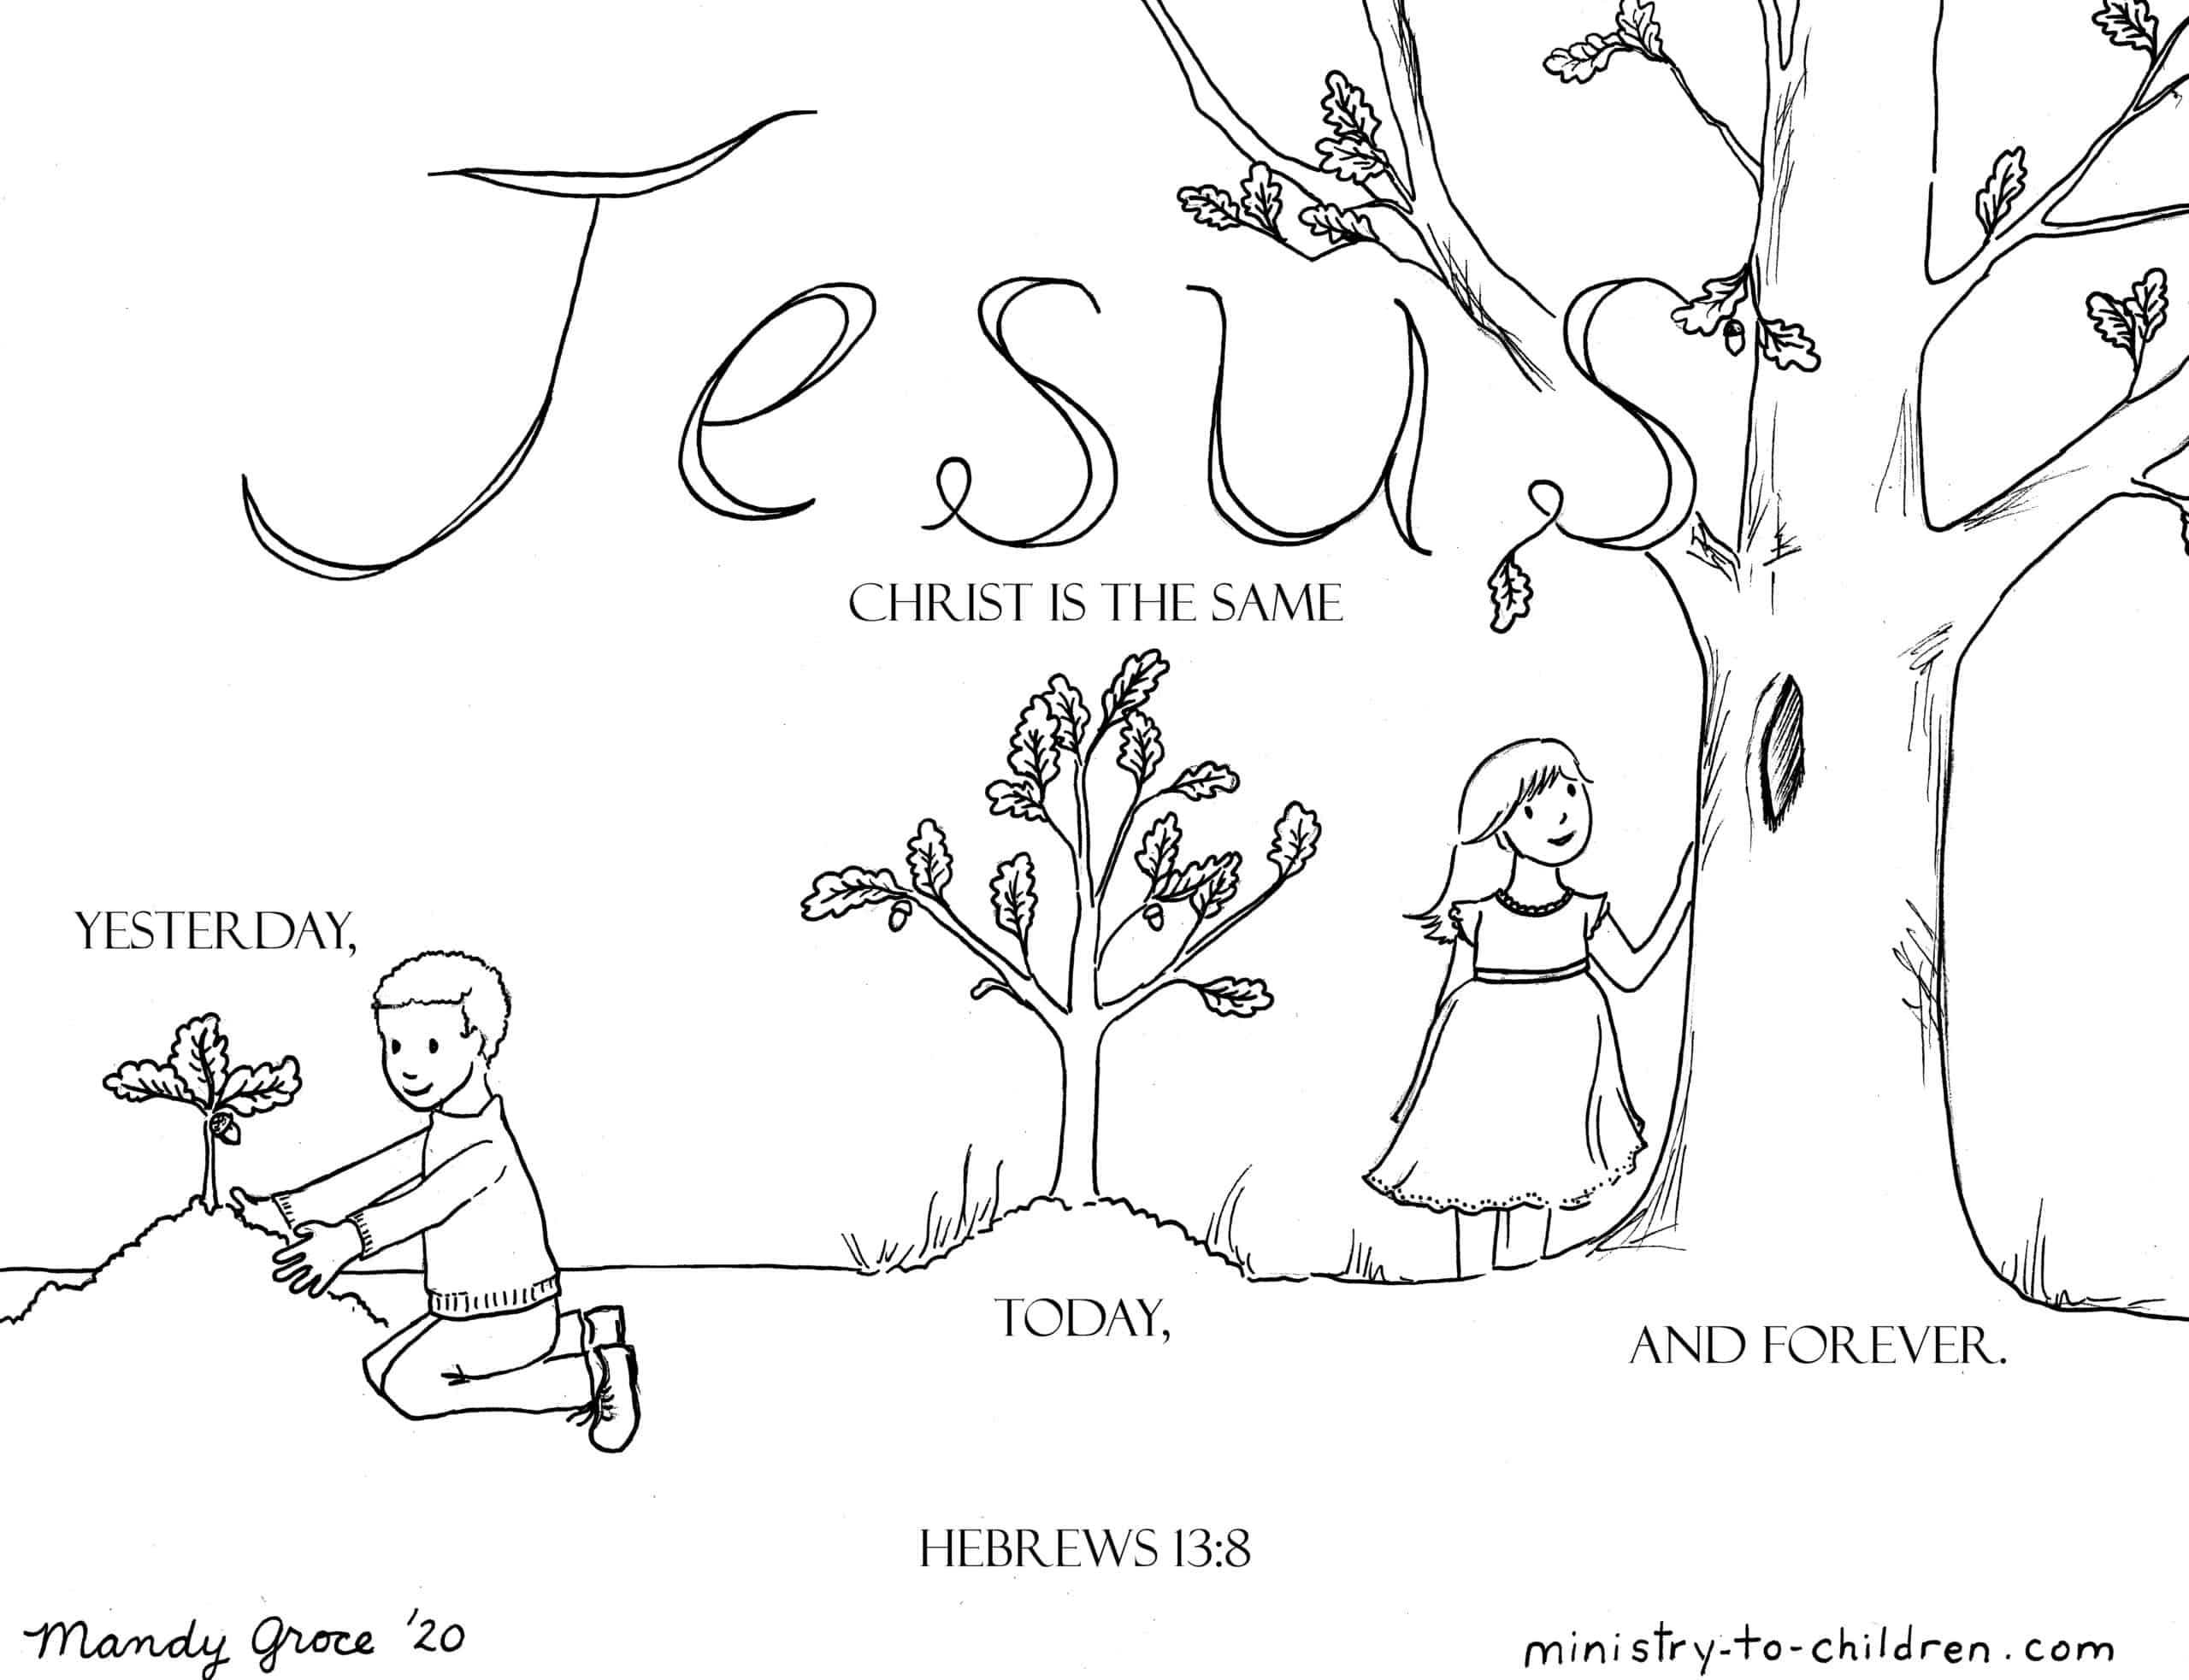 Coloring Page Jesus Christ Is The Same Yesterday And Today And Forever Hebrews 13 8